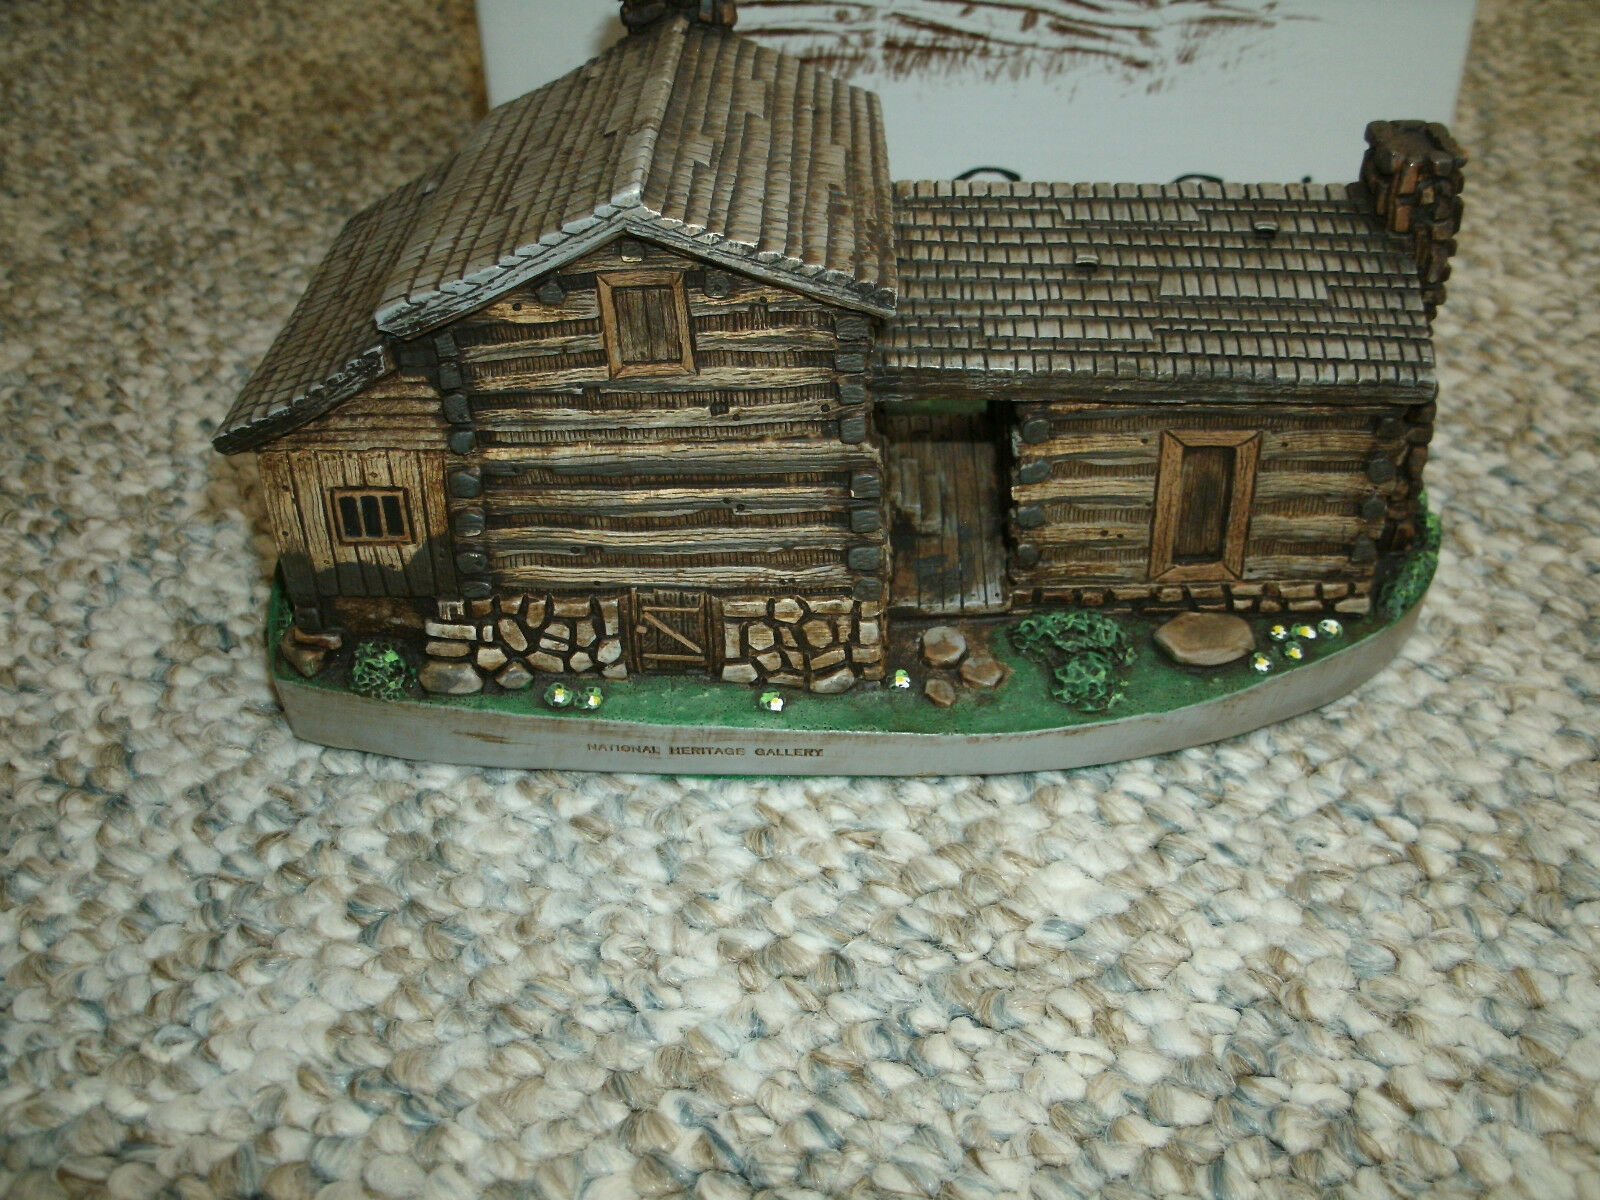 Cades Cove Series Elijah Oliver Cabin - American Heritage - COA and Box - Mint